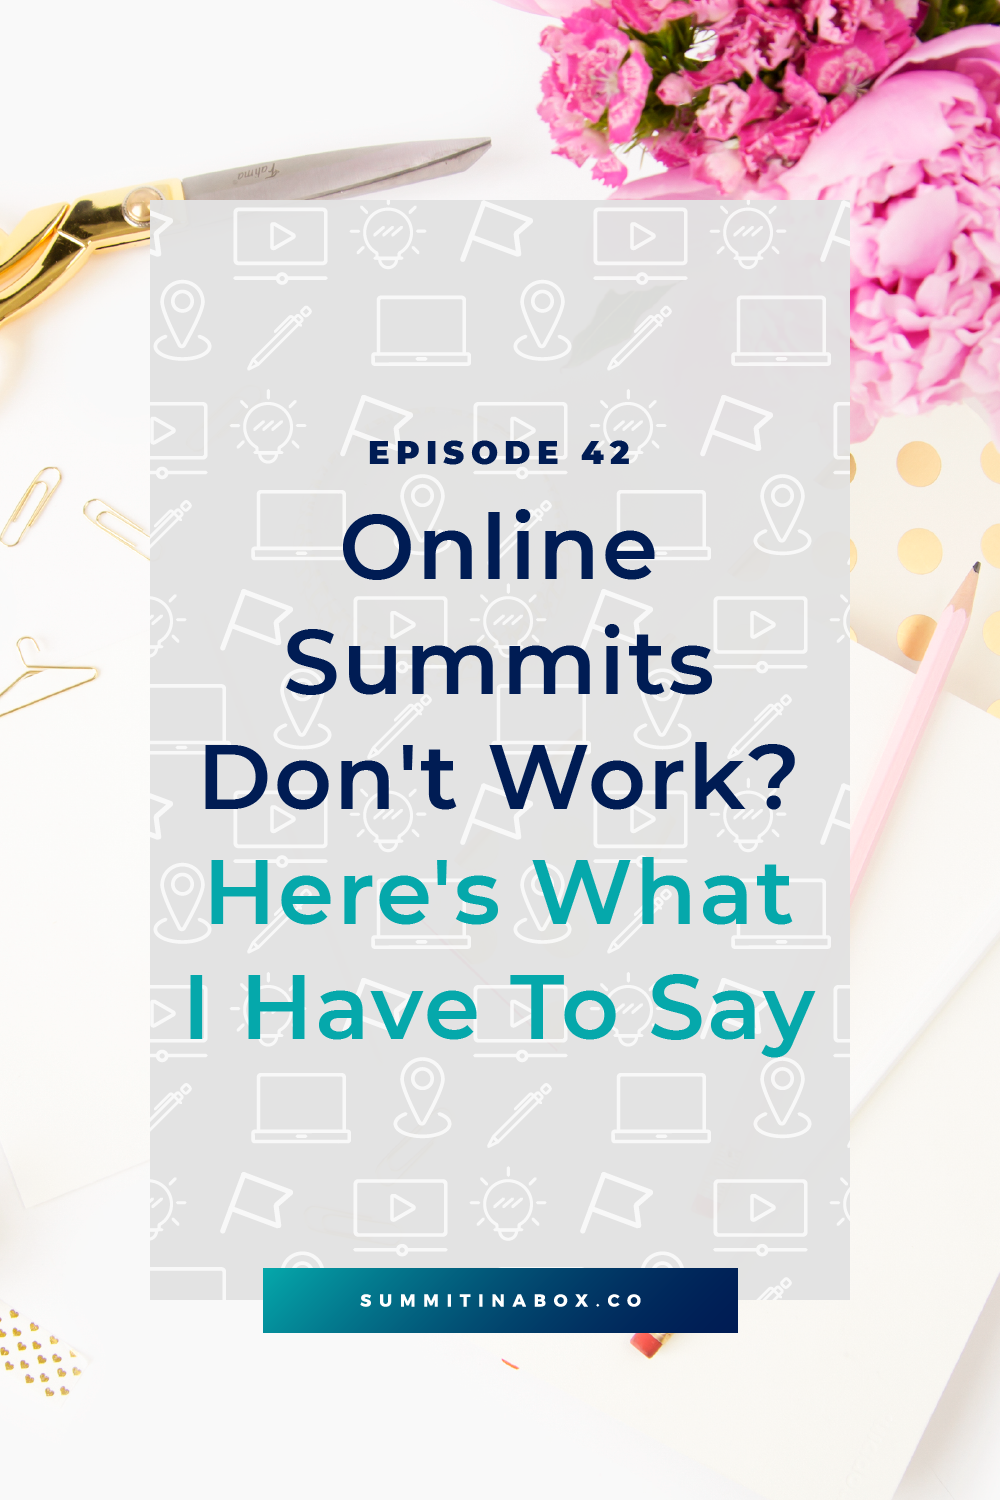 Have you heard someone say that virtual summits don't work? If so, it's likely that they just missed important and profitable parts of the process. Here's why.